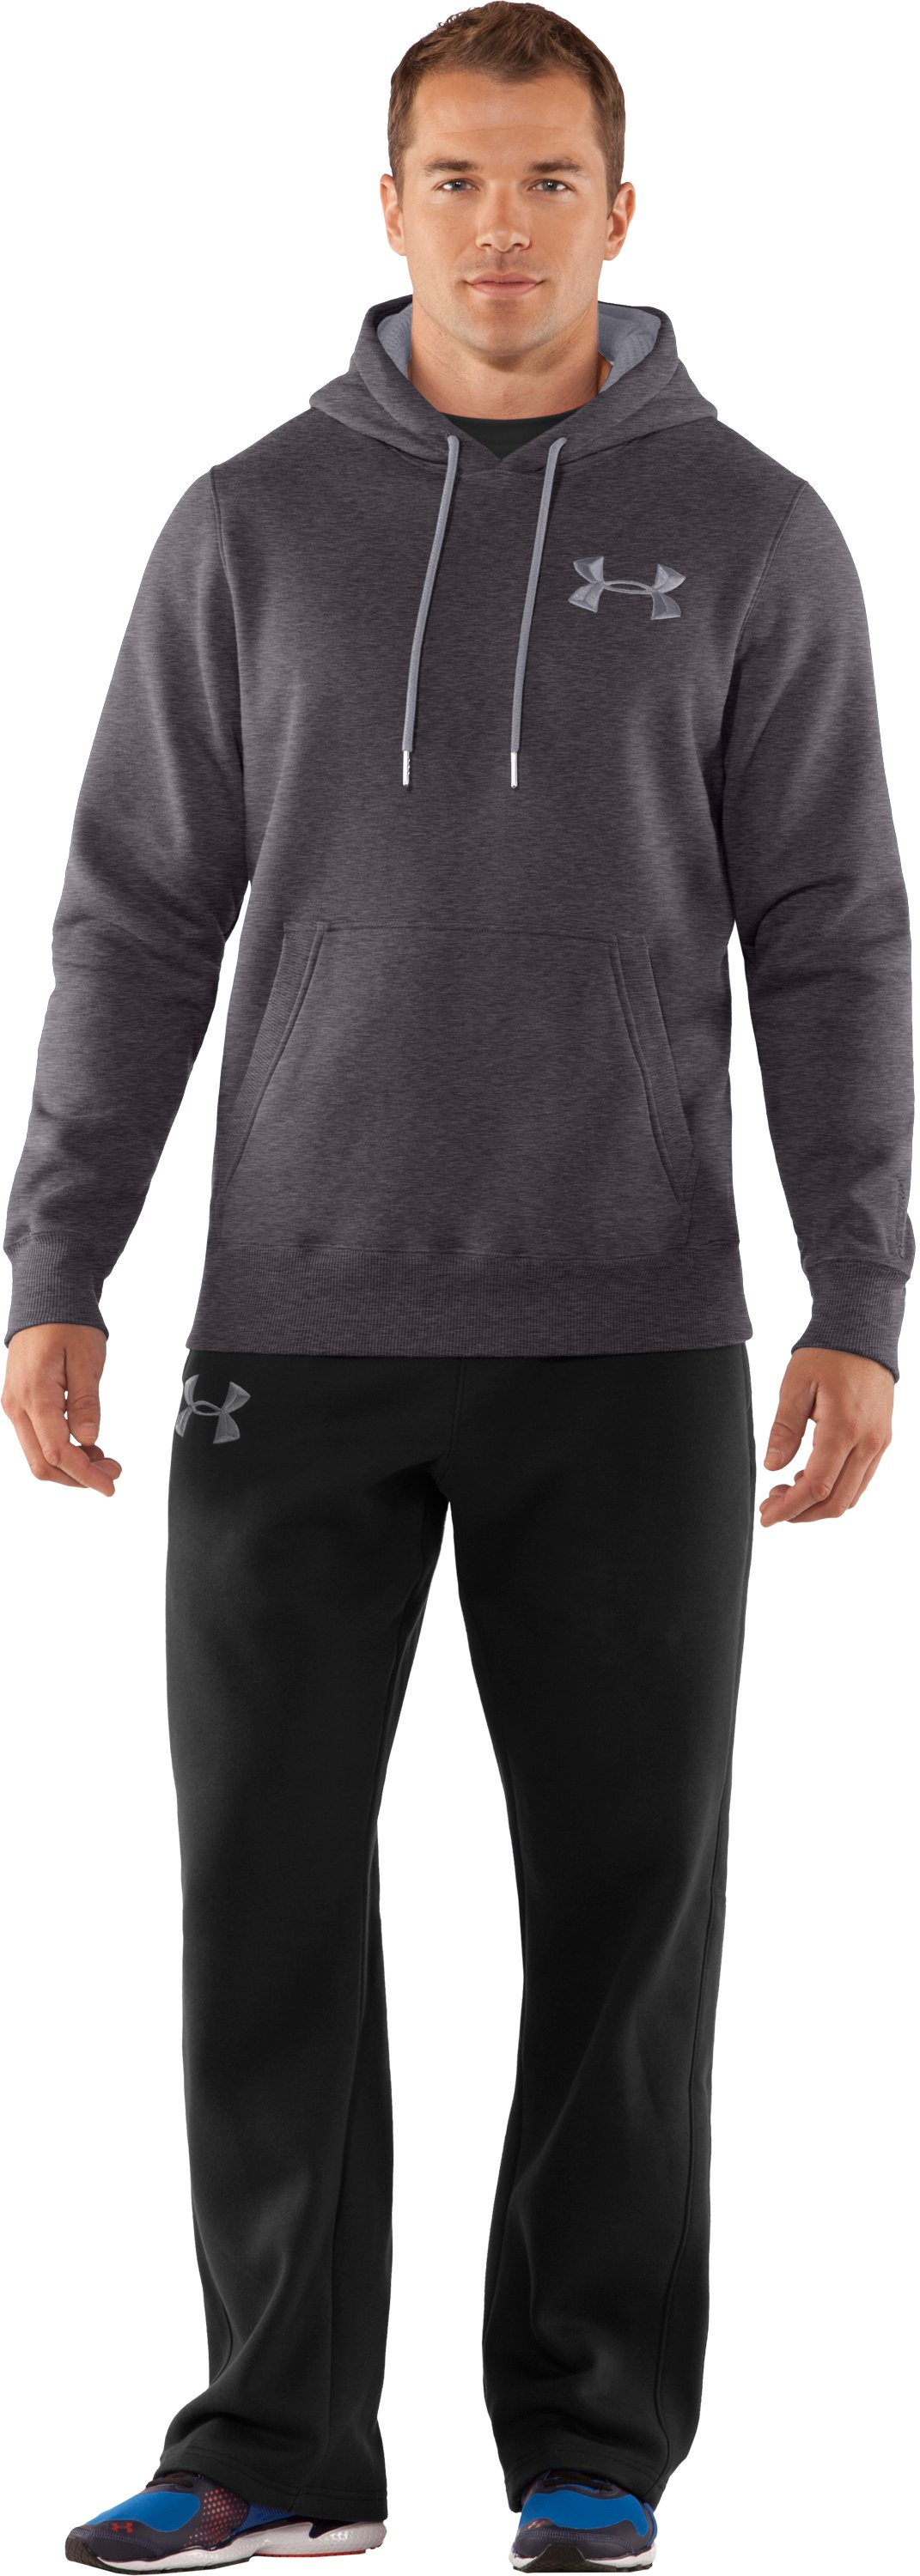 Men's Charged Cotton® Storm Pullover Hoodie, Carbon Heather, Front